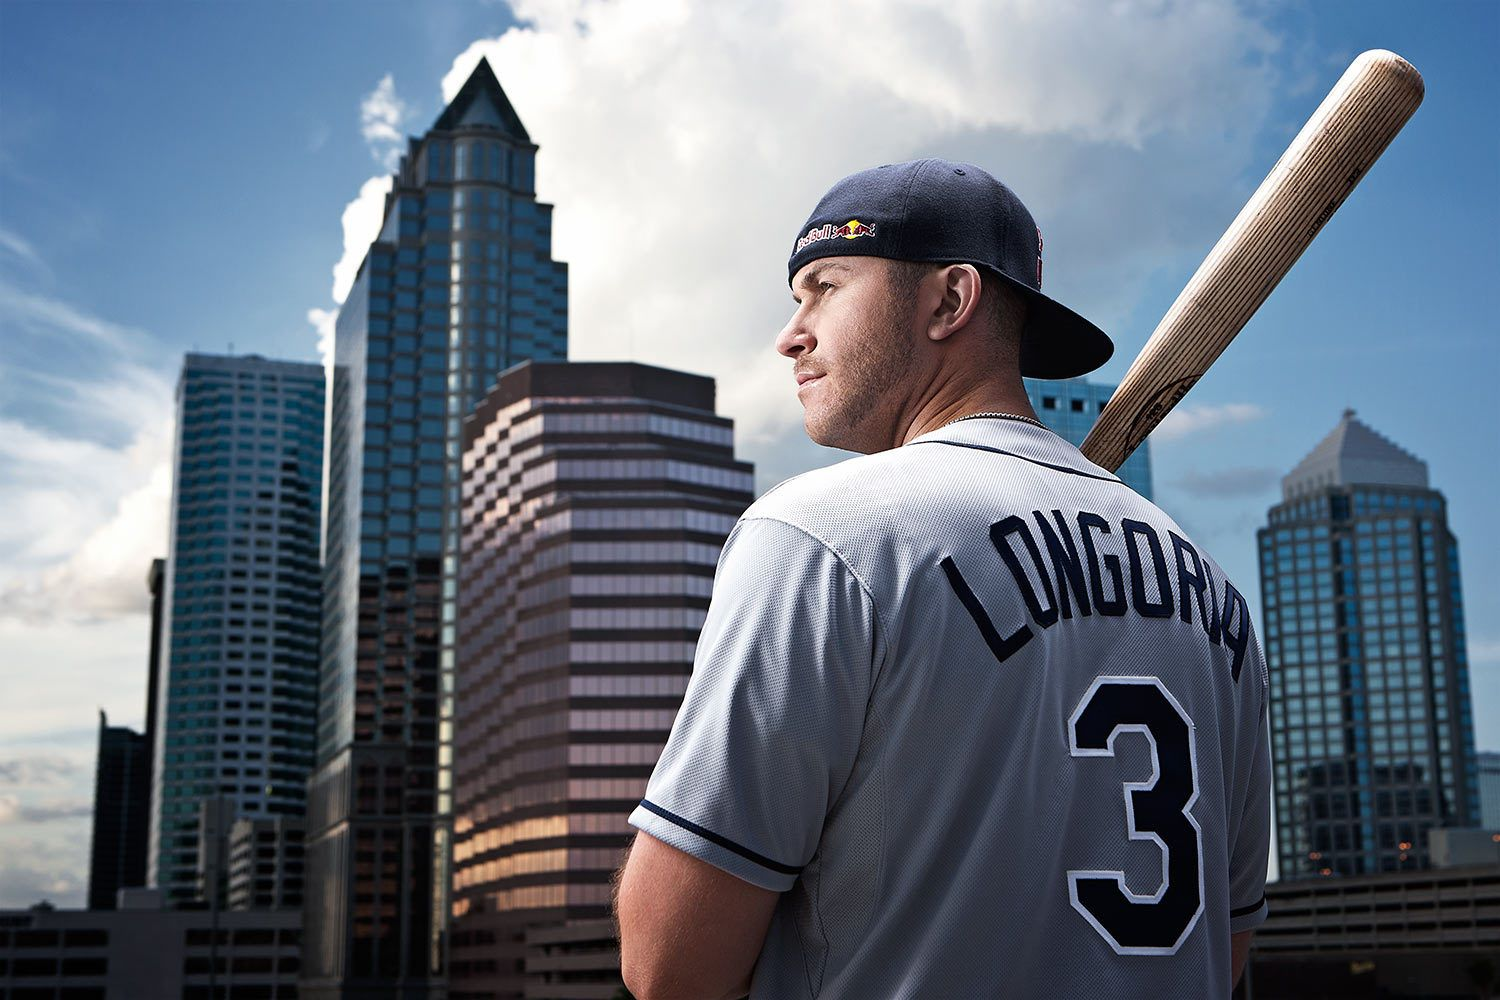 Baseball player Evan Longoria for Red Bull shot in Tampa, FL